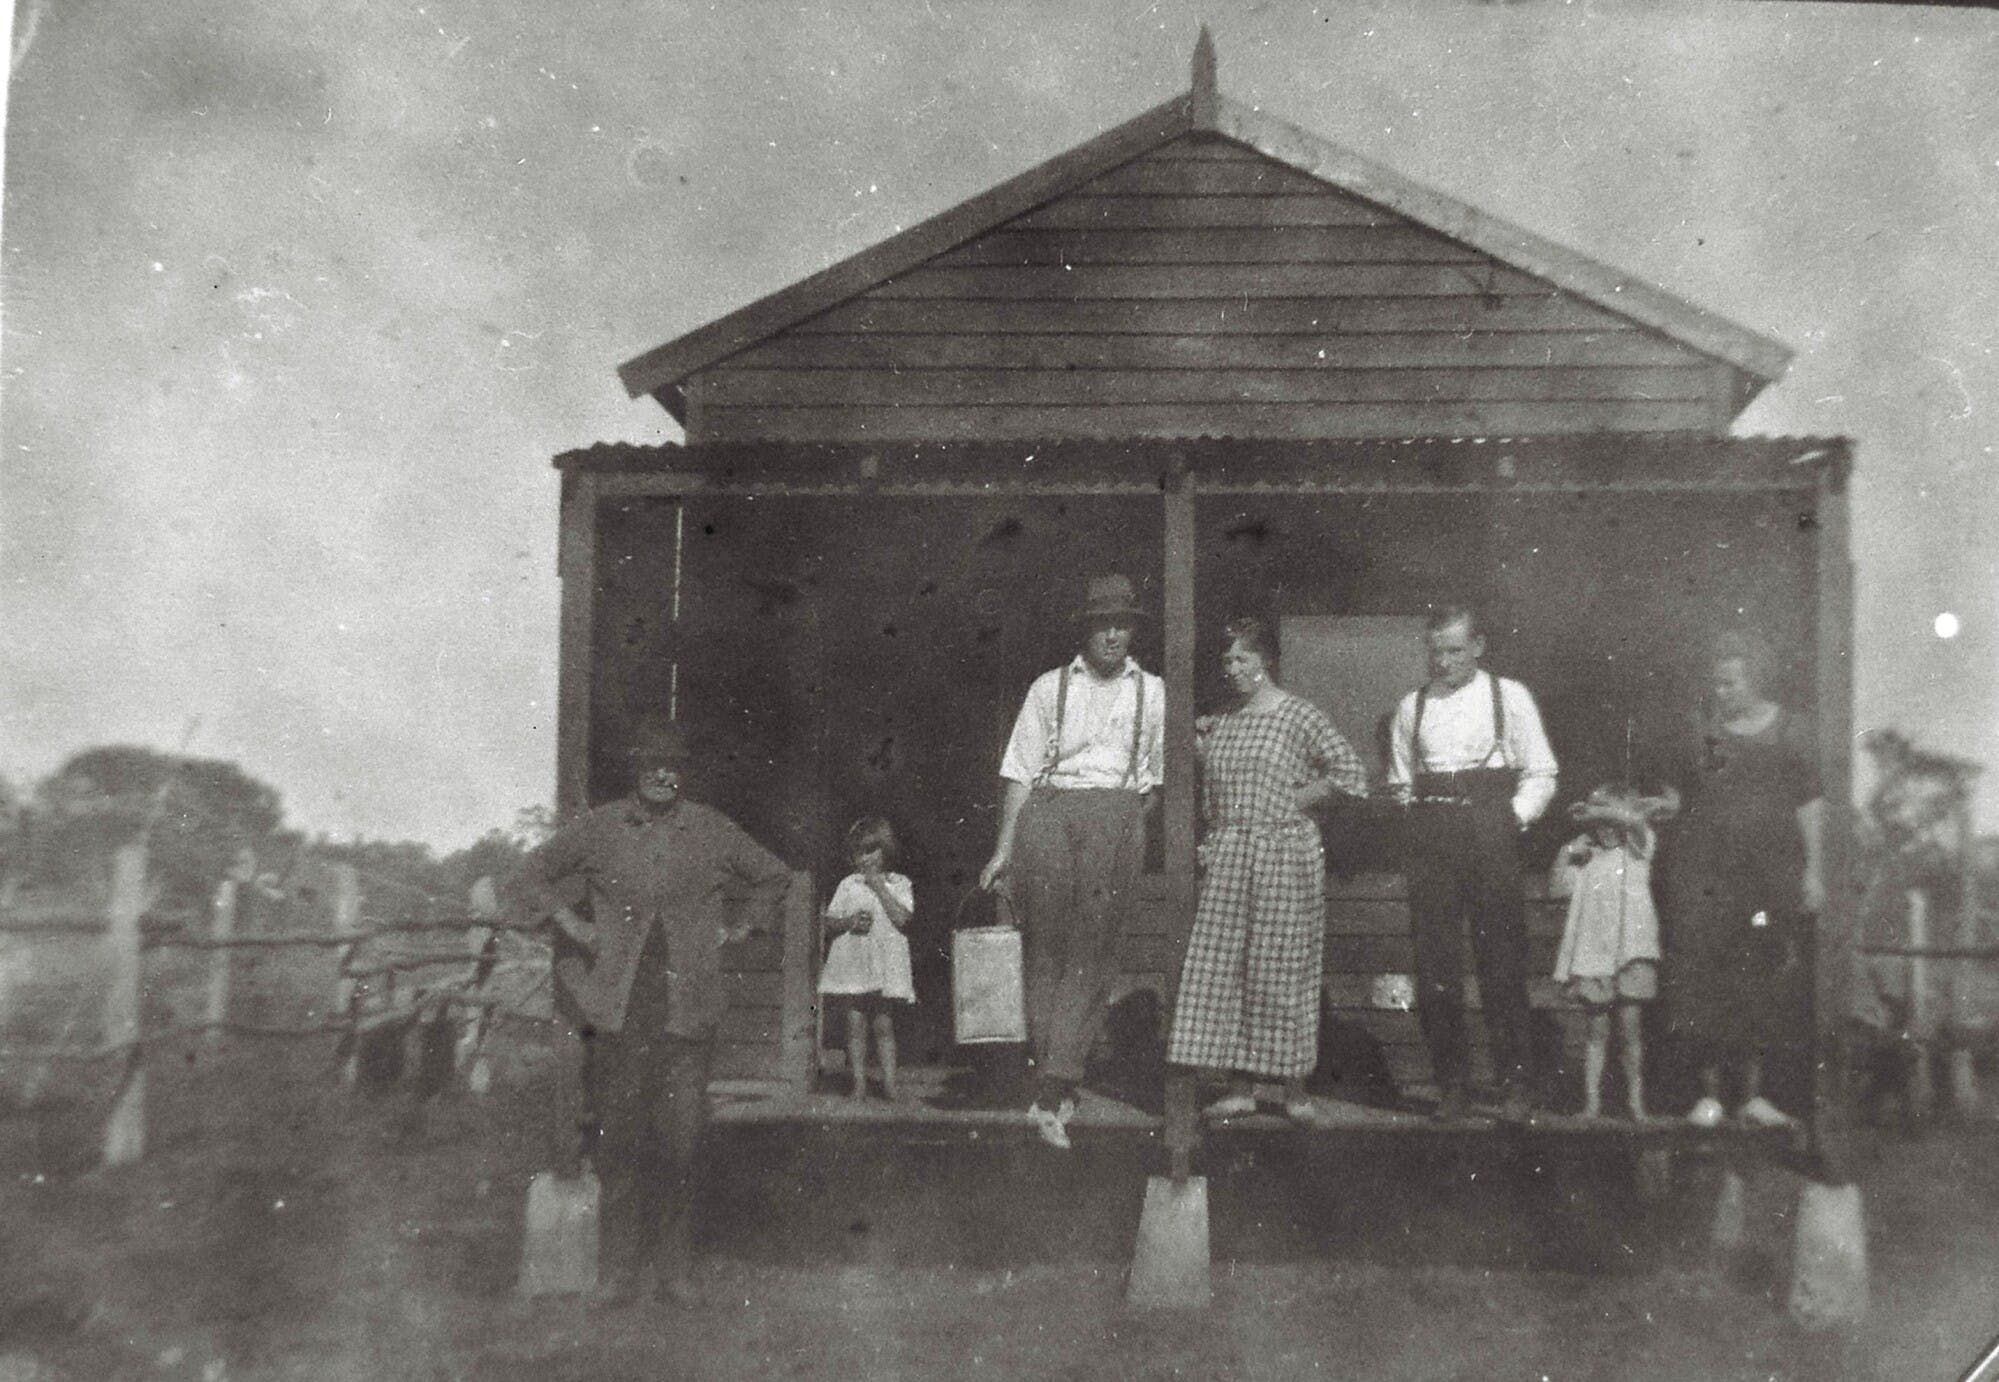 Roach family on verandah of weekender, No 28 Coon Island, 1920s. From Left Hector Ross, Hazel Ross, Arthur Roach, Rose Roach, Mr Rooke, and two members of the Rooke family.